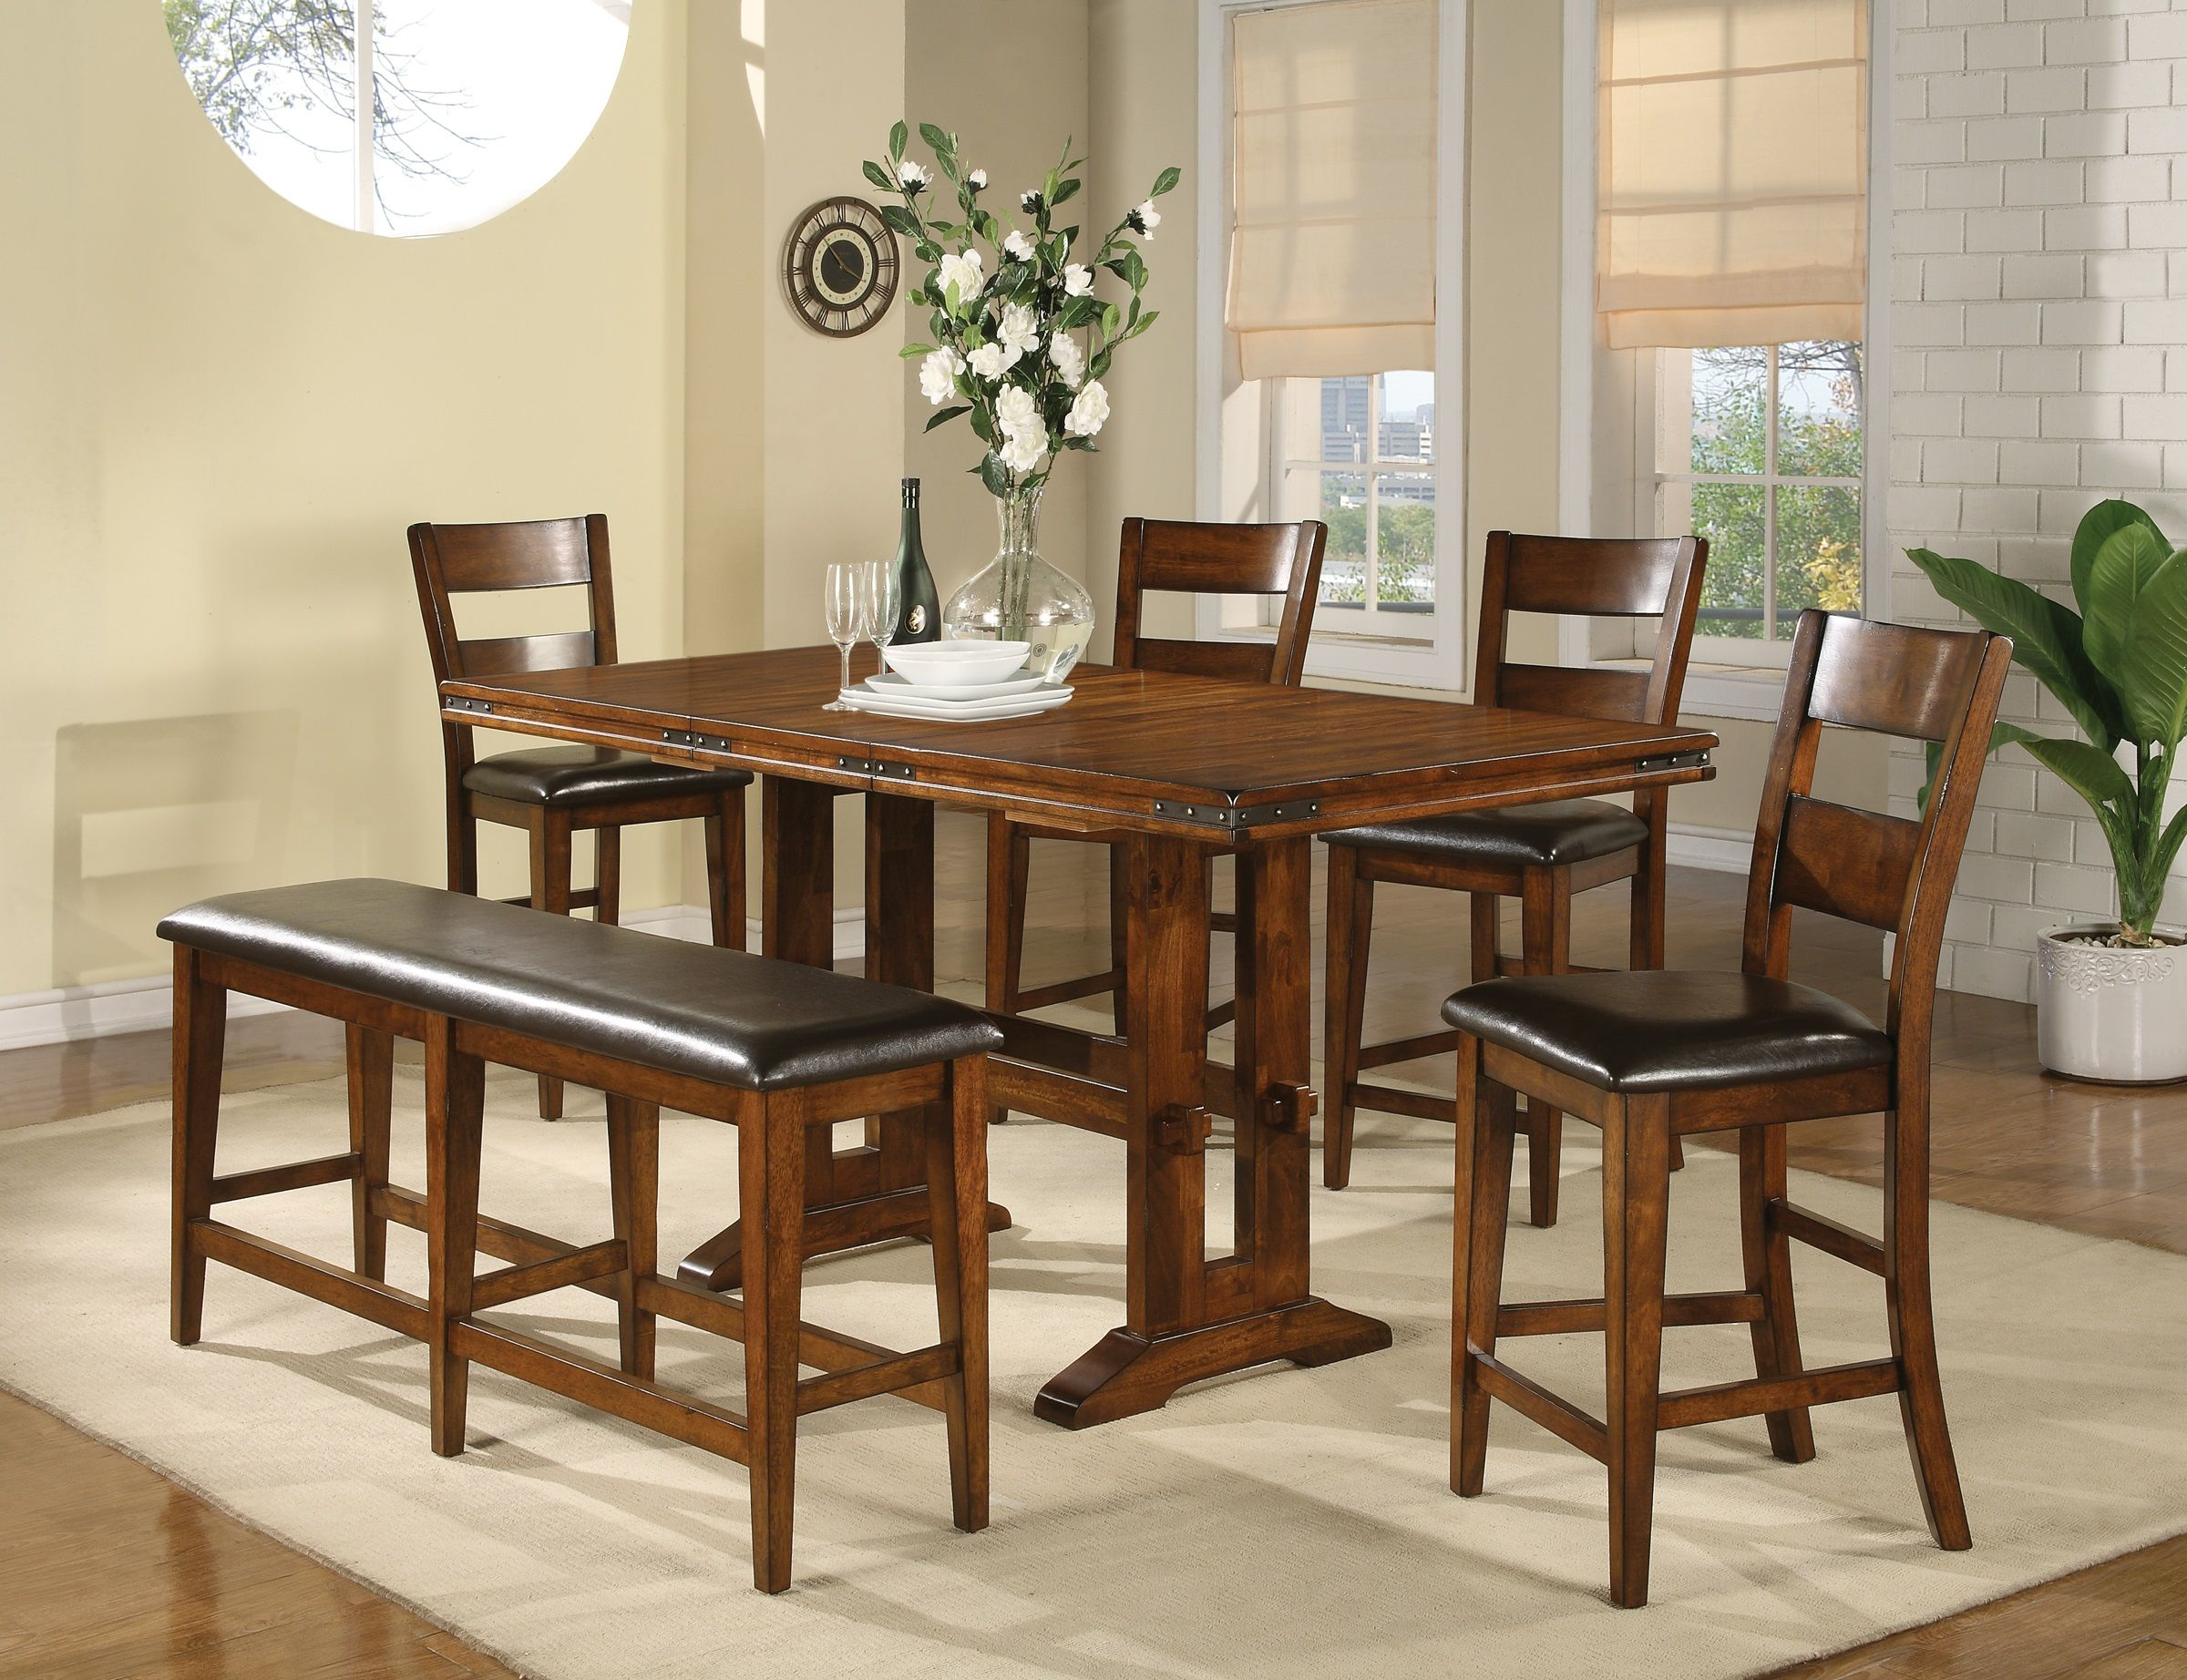 mango counter height dining set dmgtset dining sets from